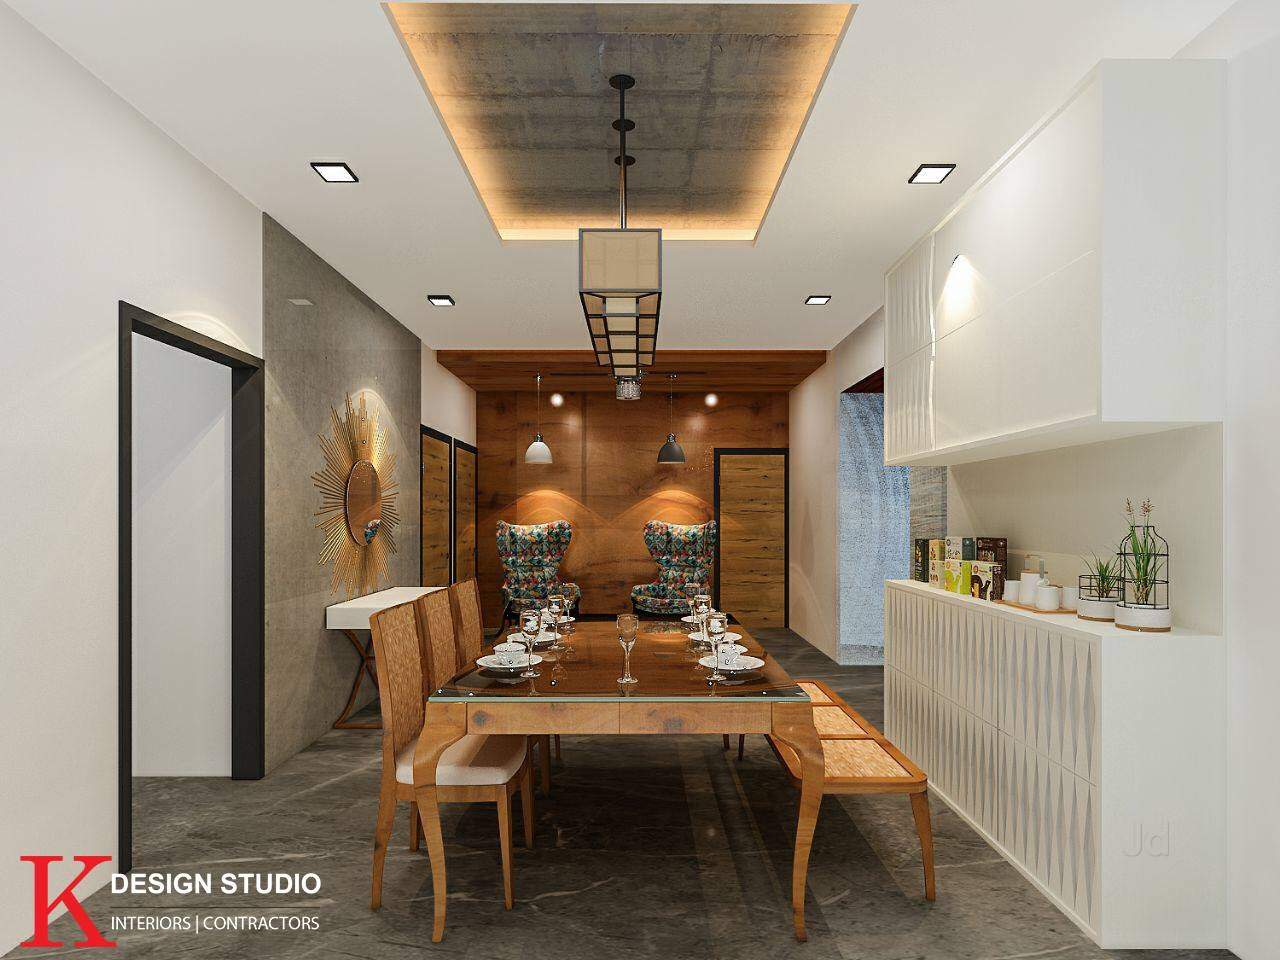 K Design Studio Interior Designers